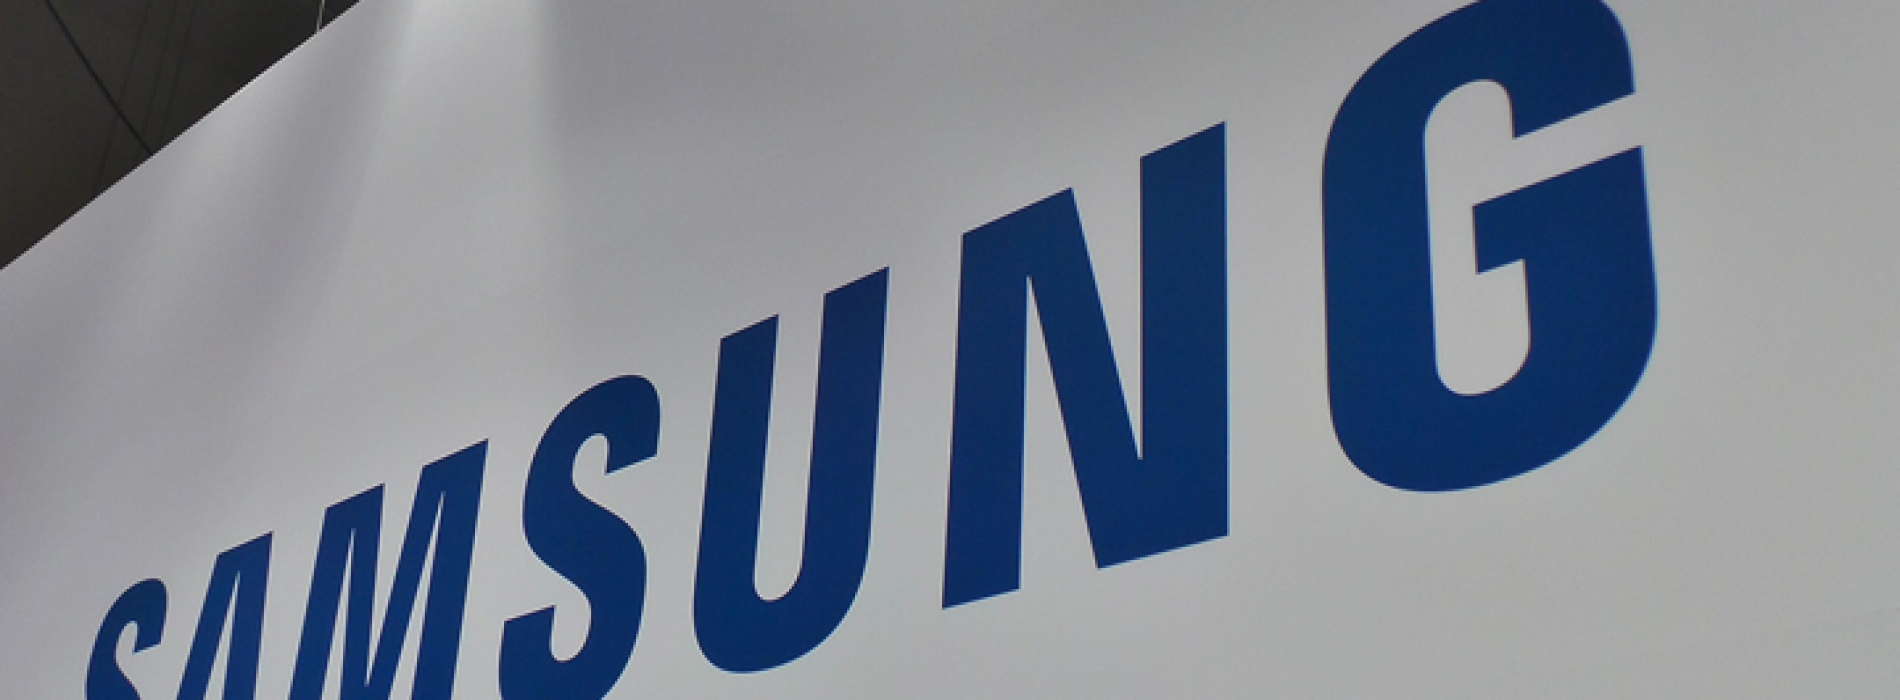 Report: Samsung to debut Galaxy Note 4, Gear Glass, and more at IFA